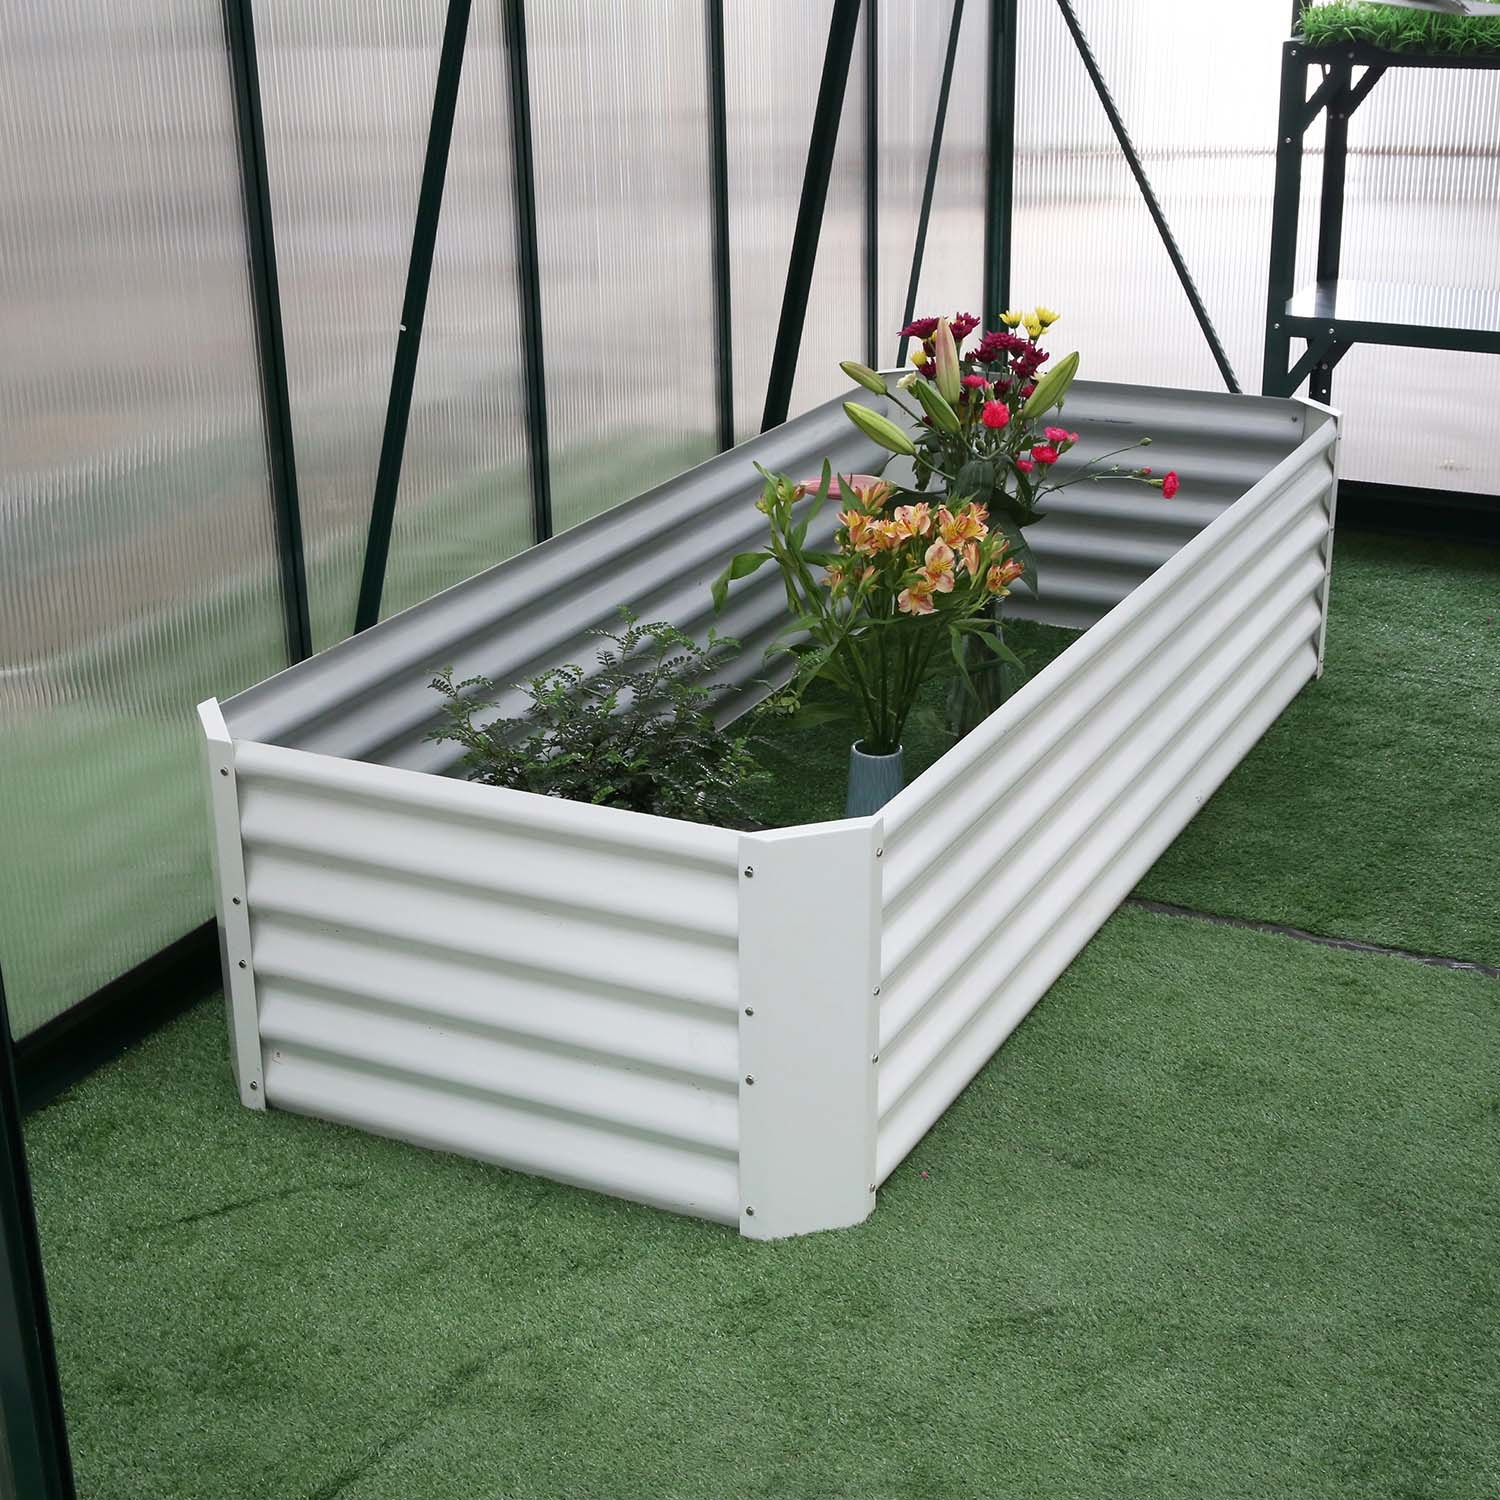 New Style Galvanized Steel Powder Coated Raised Garden Bed For Vegetable Flower Planter Edge Rdsg2008045 Wo China Raised Garden Bed And Raised Garden Planter Price Made In China Com